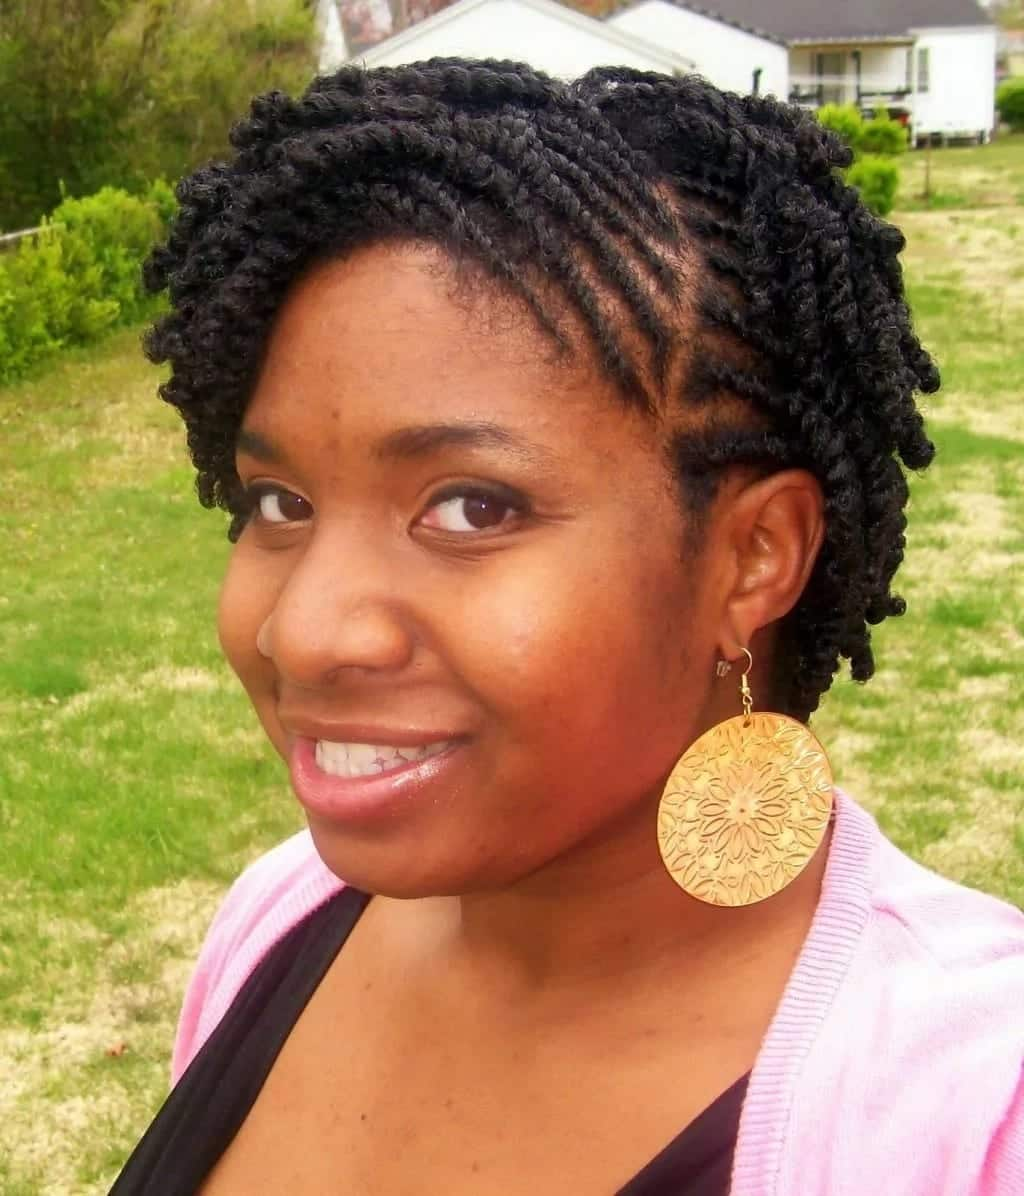 short natural hairstyles for black women natural hairstyles for black women short curly hairstyles for black women styles for short natural hair